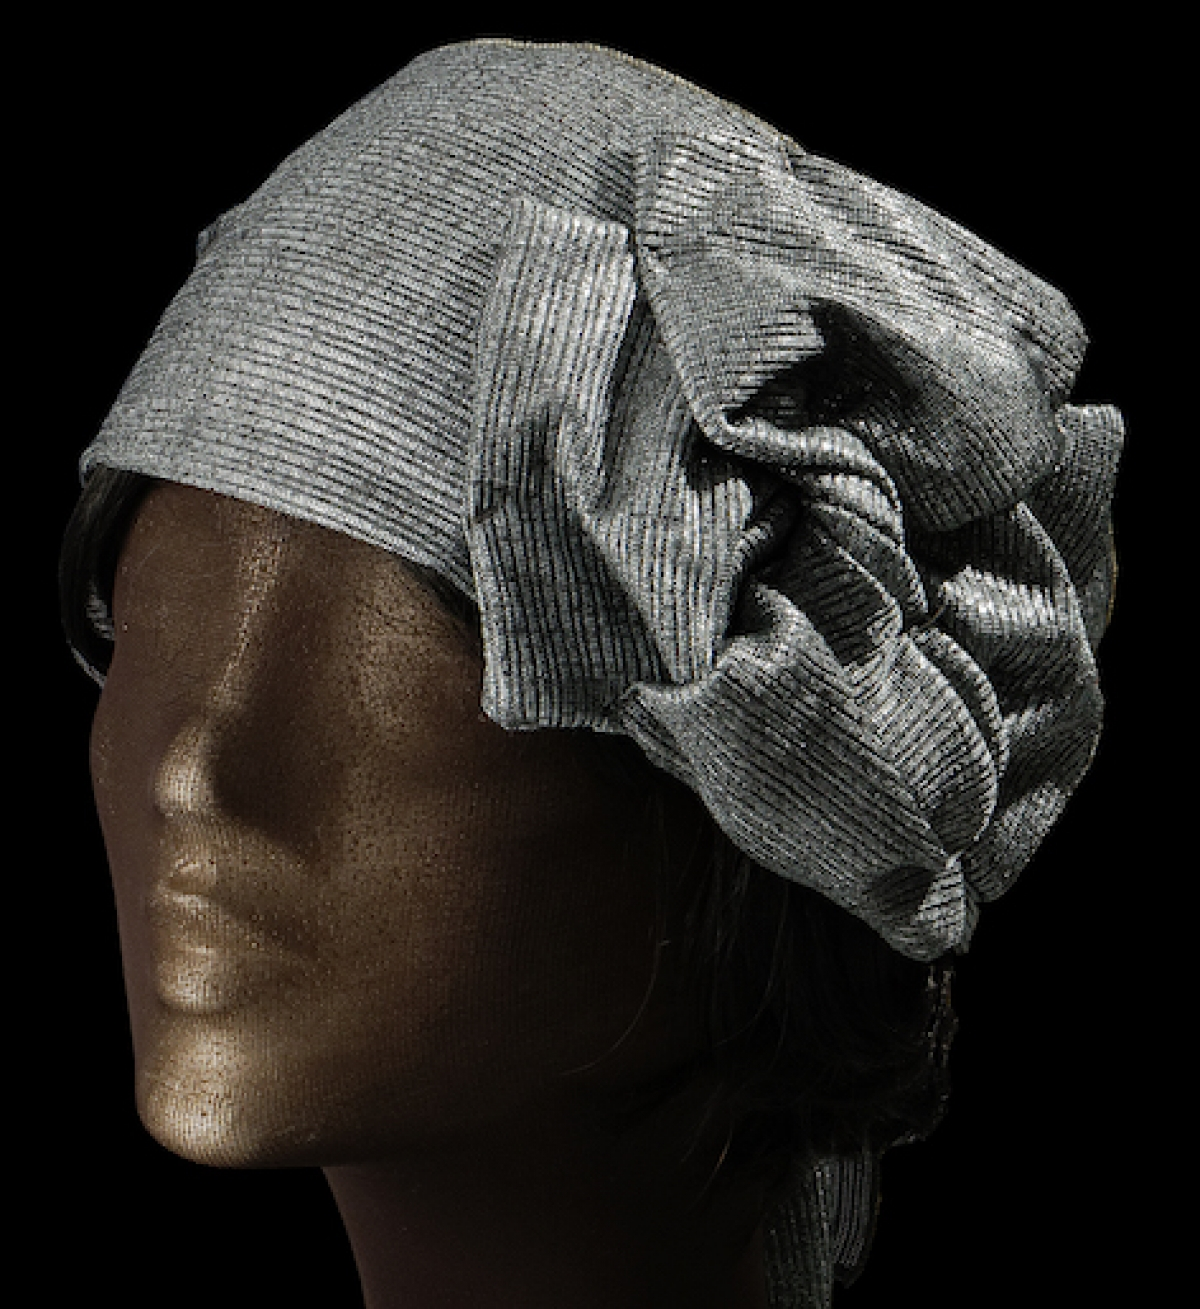 Fashionable headband for an orthodox Jewish woman.